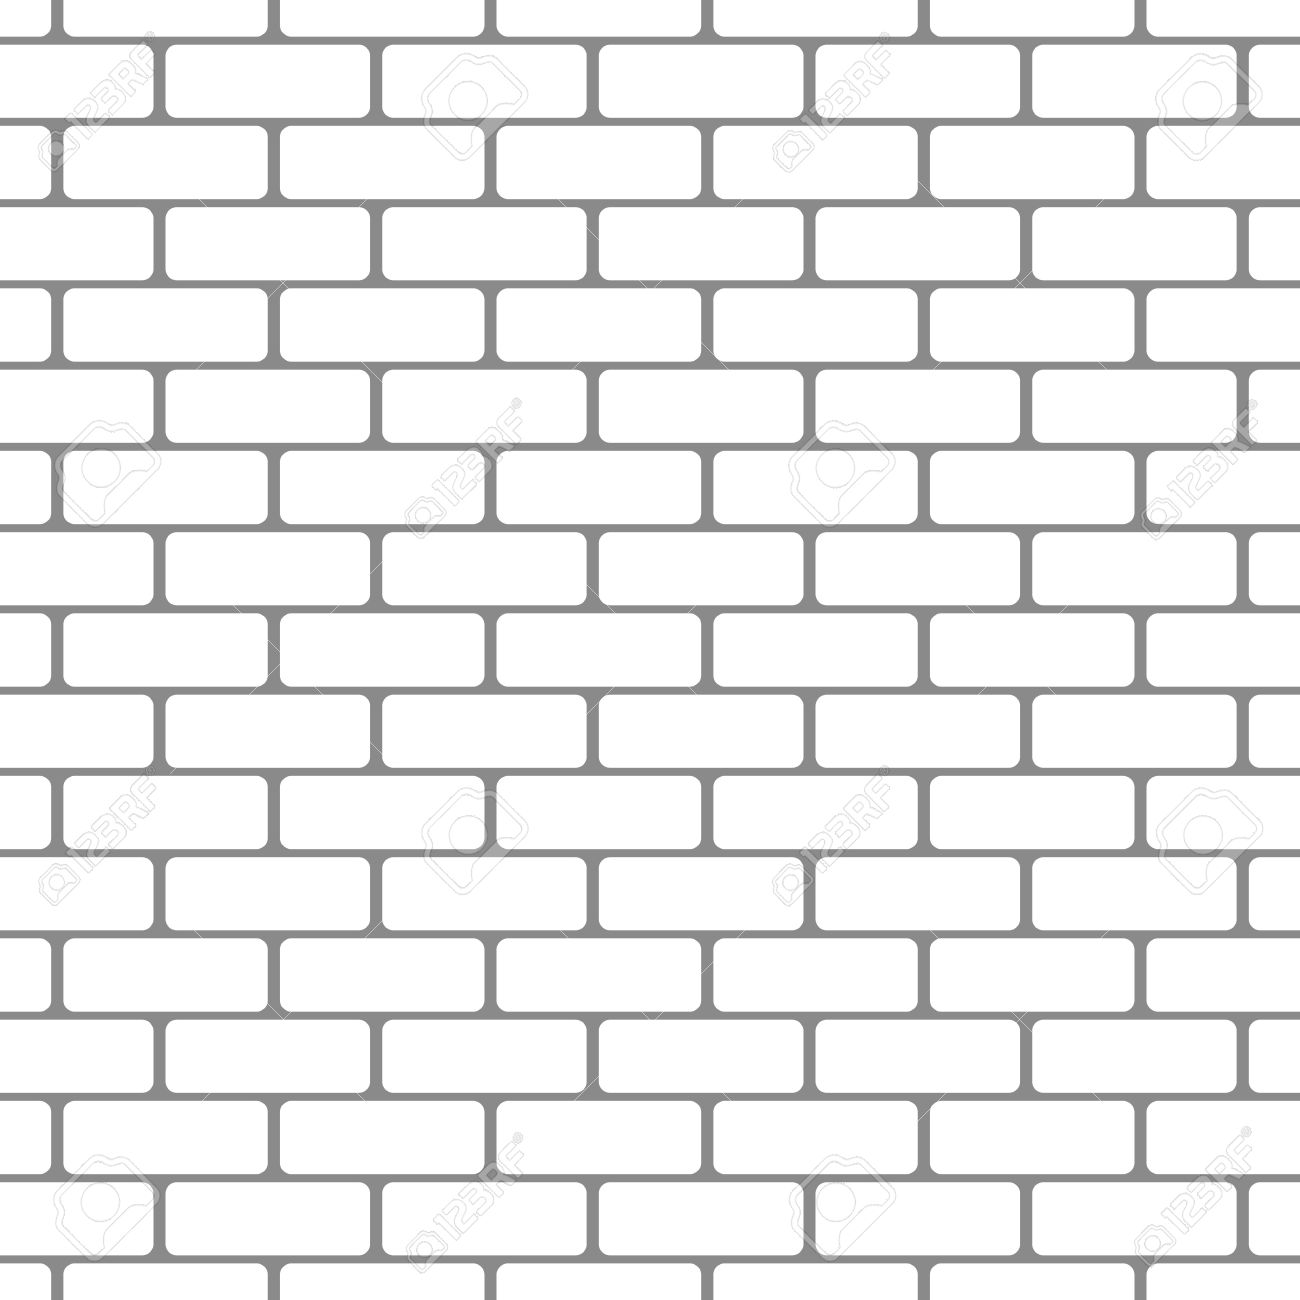 Clipart with brick pattern.